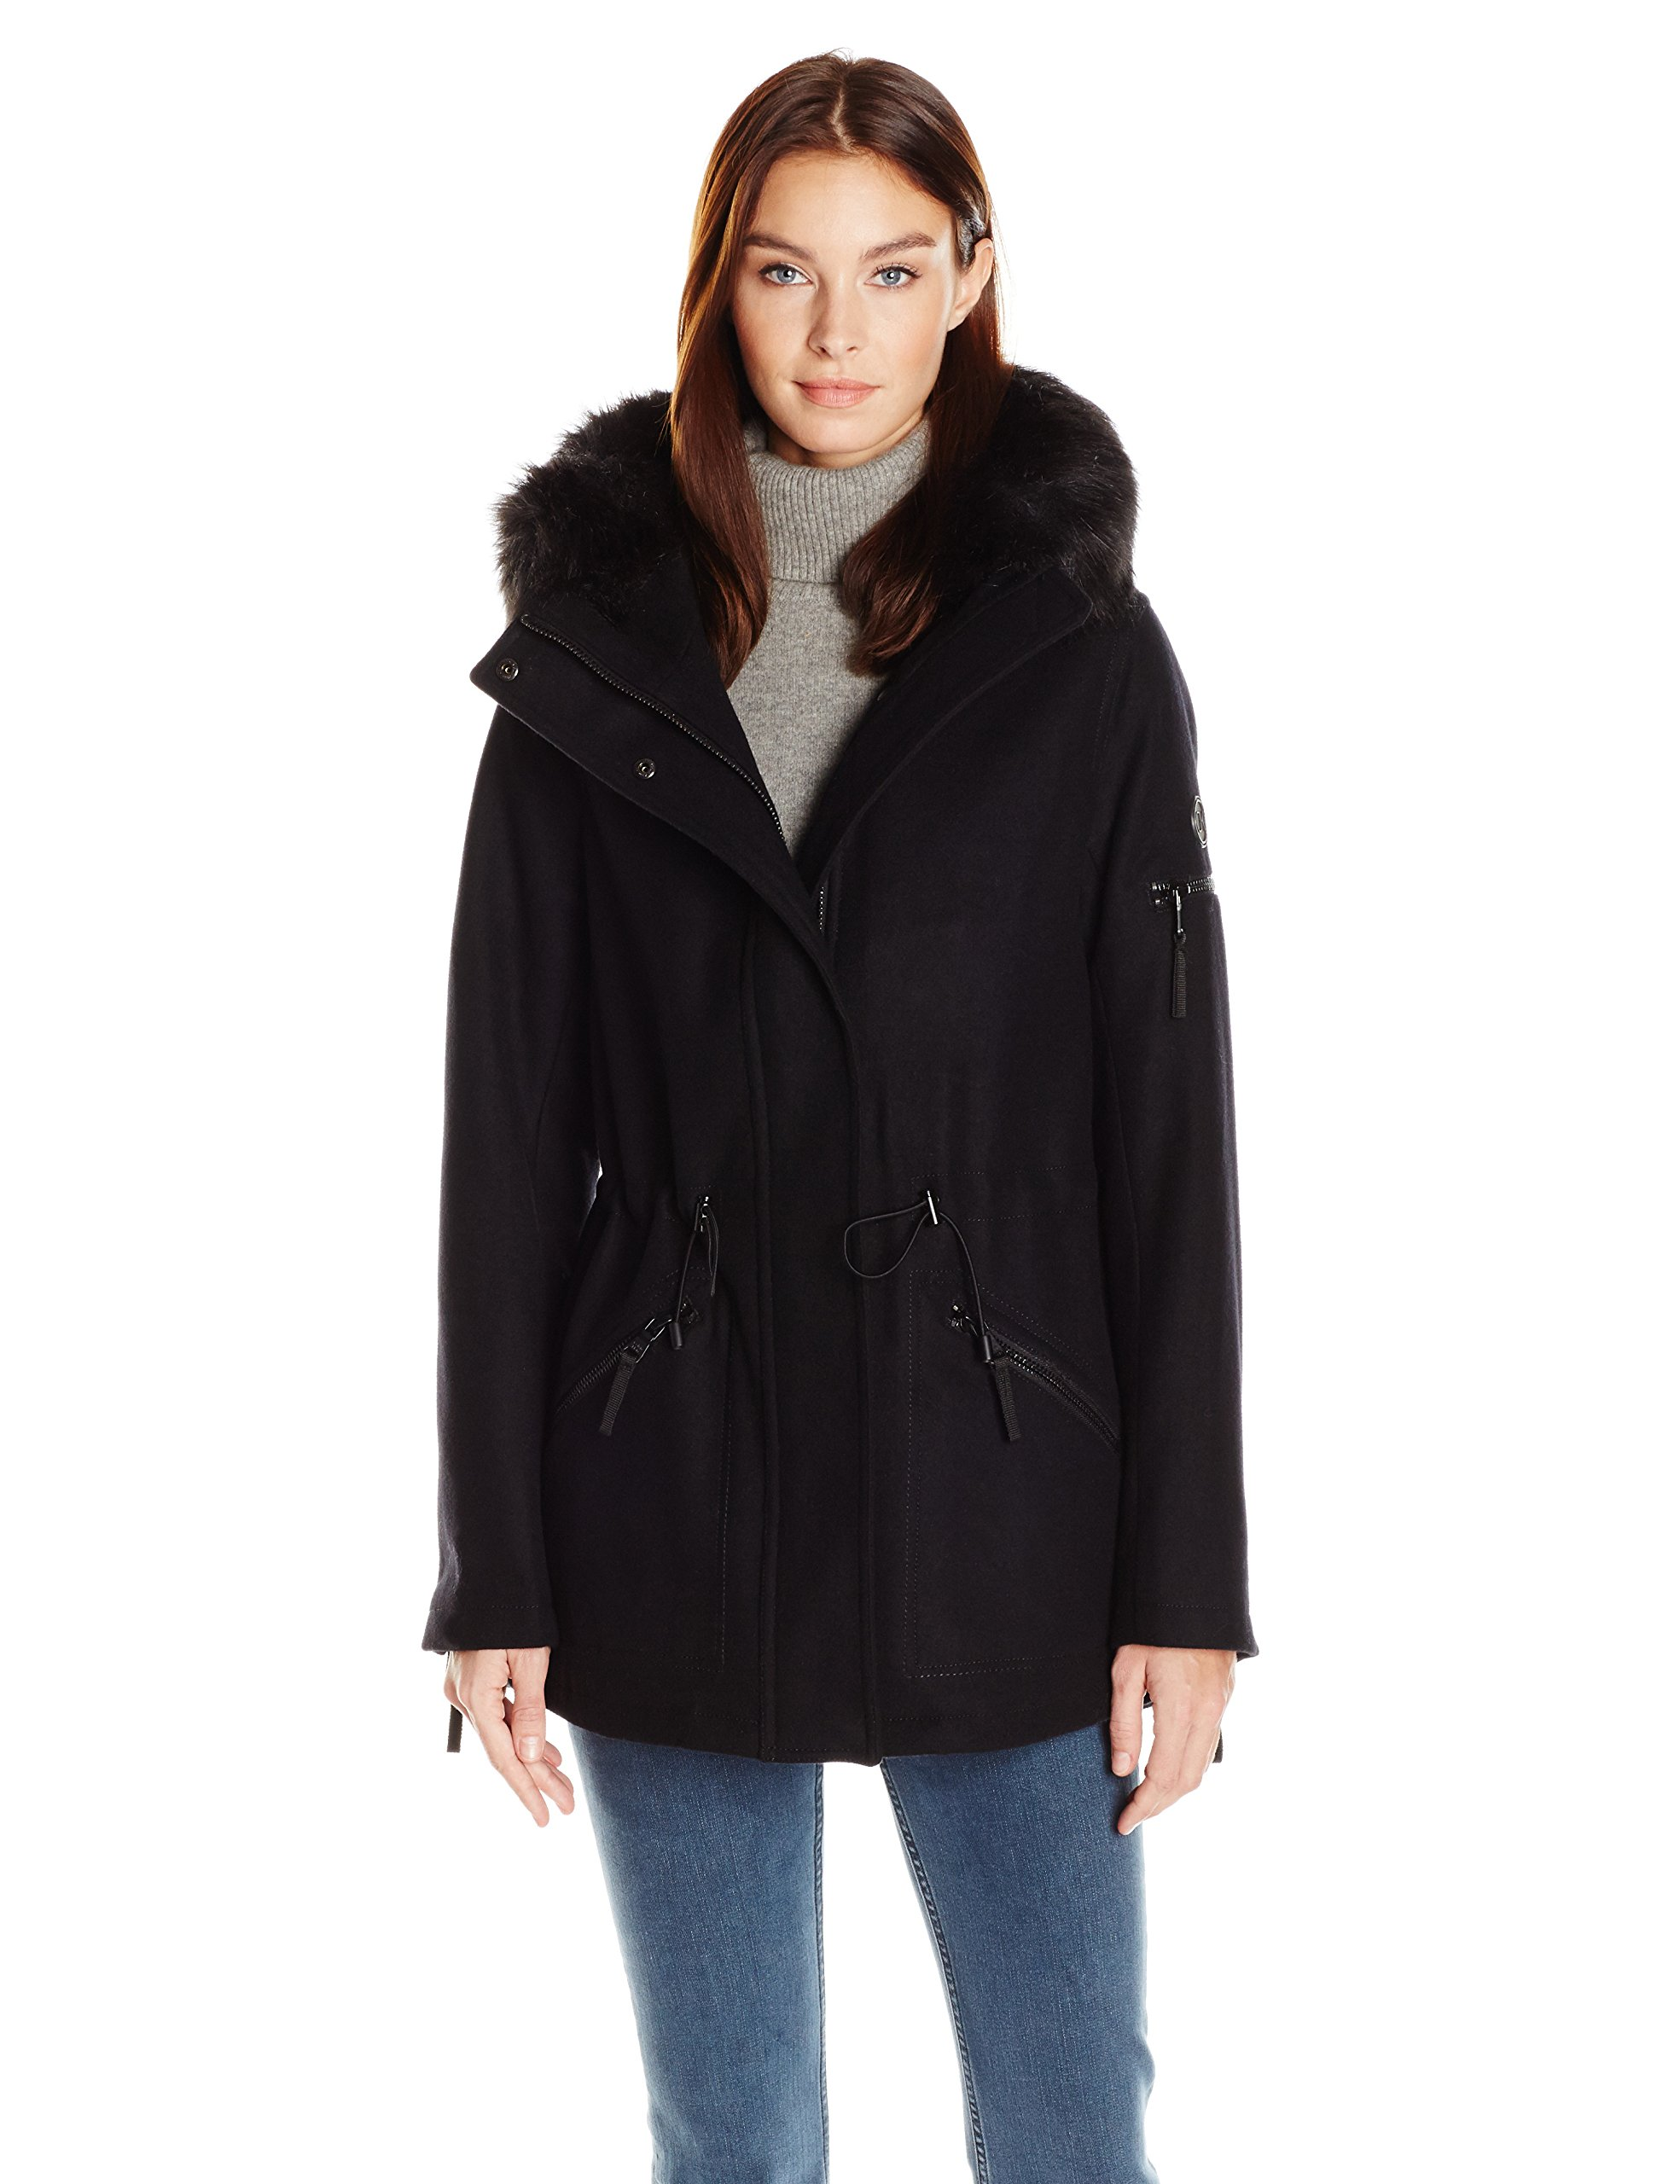 Calvin Klein Women's Anorak Wool Faux Fur Trimmed Coat, Black, XL